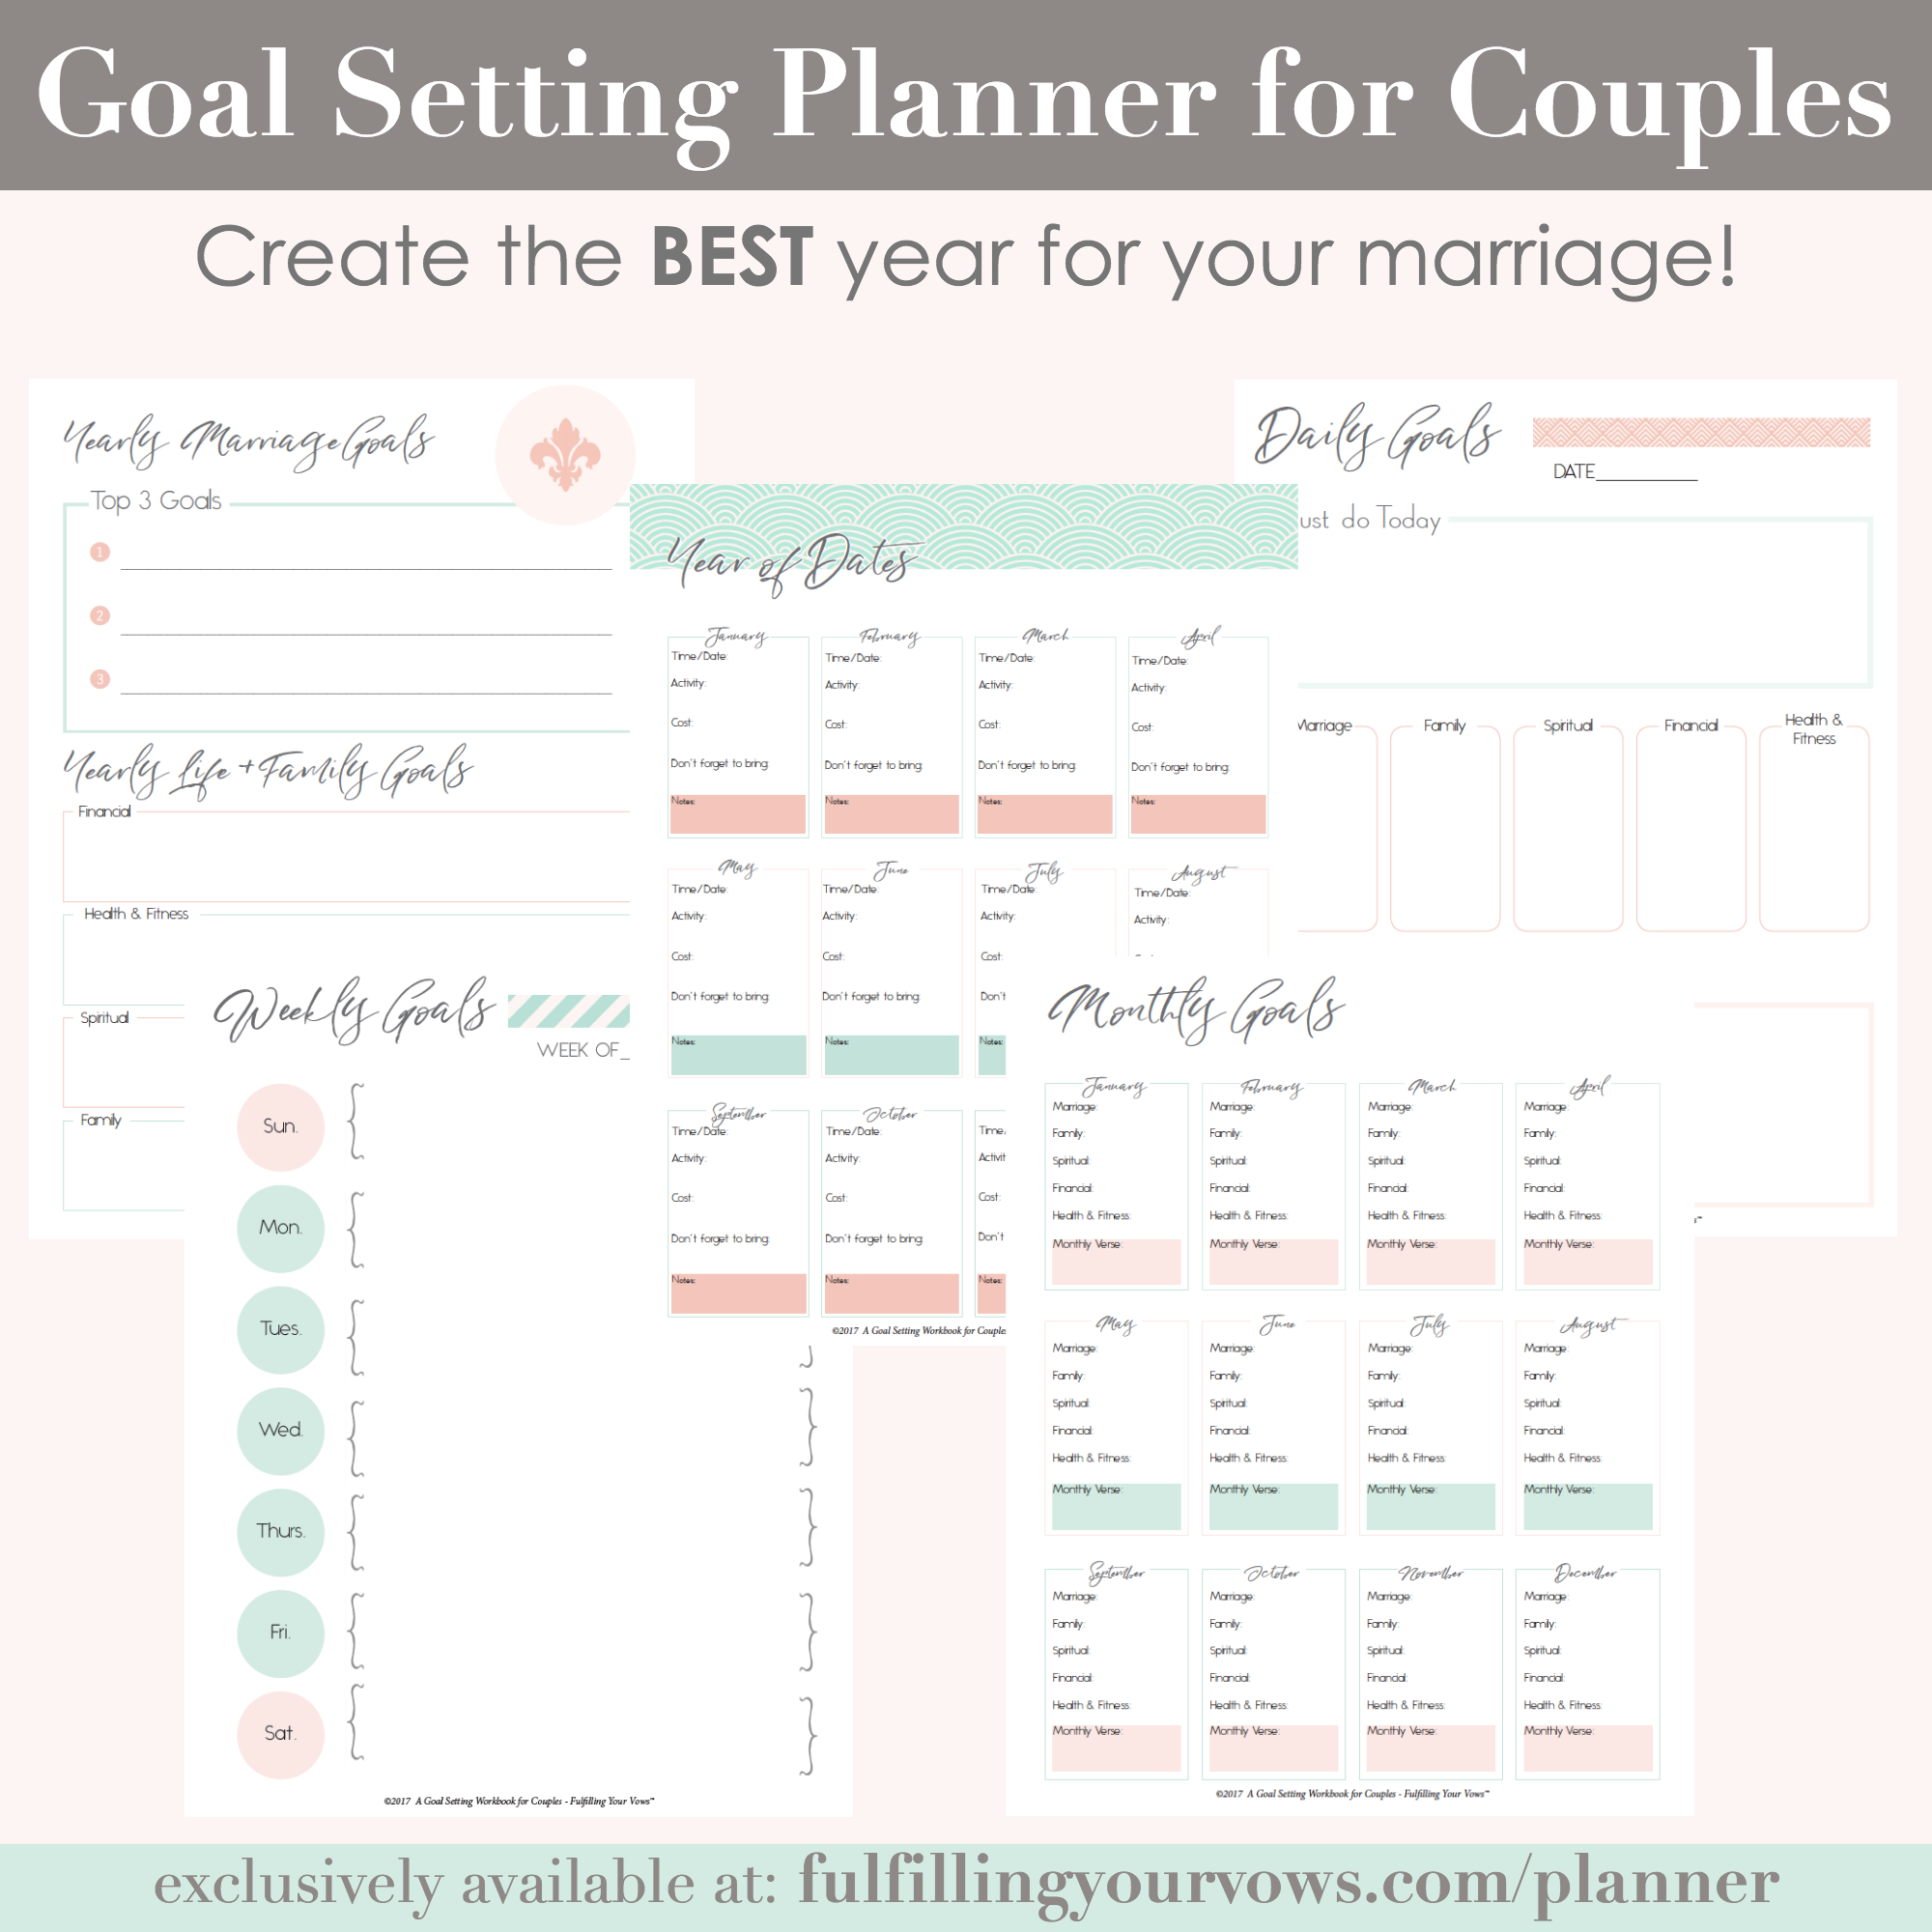 photograph relating to Planner Pdf referred to as Objective Environment Planner for Partners (PDF)